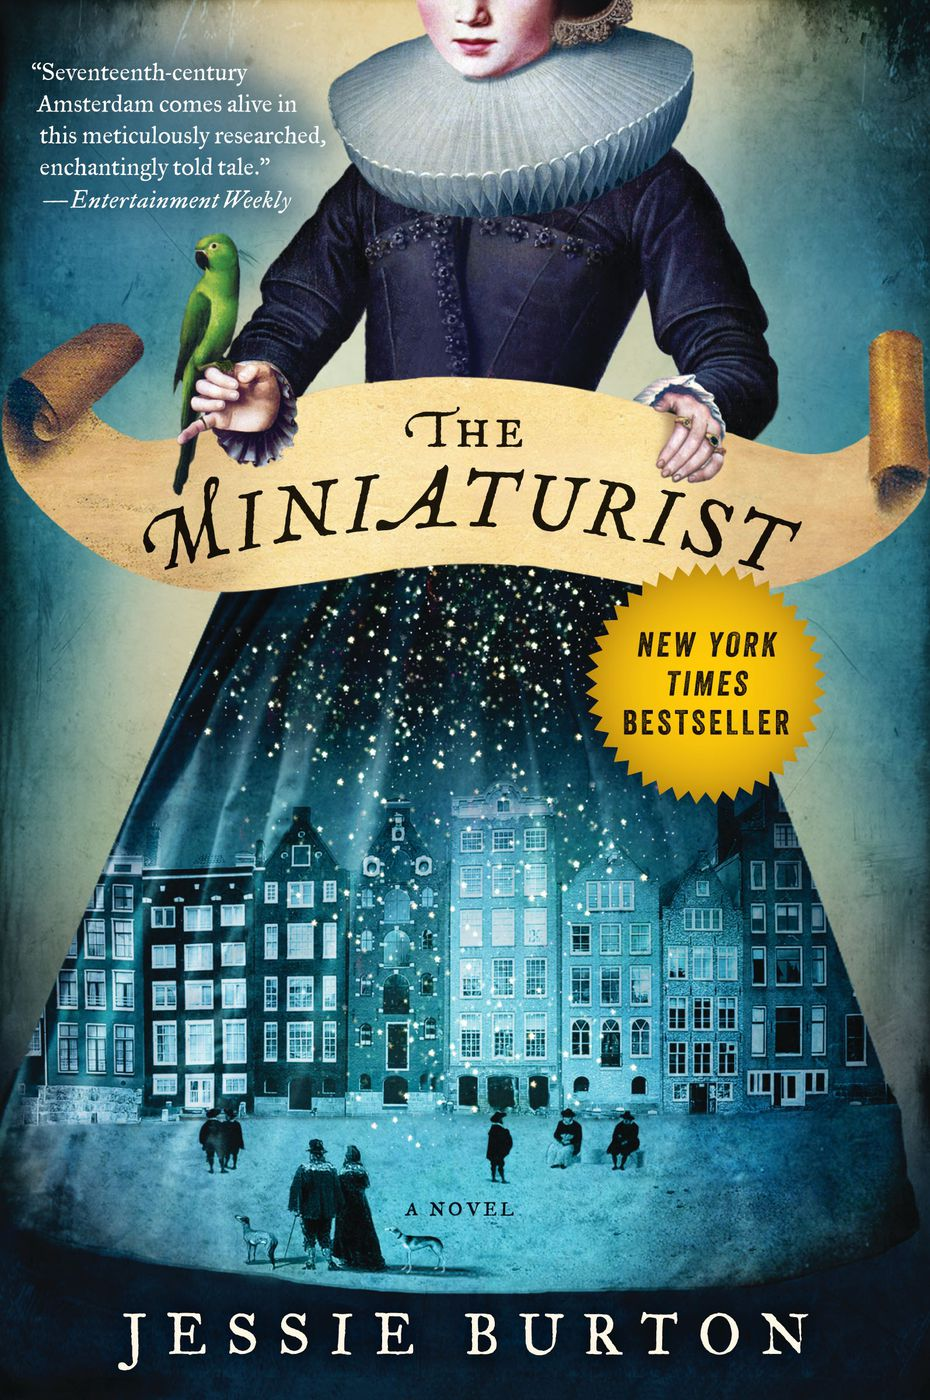 The Miniaturist, by Jessie Burton